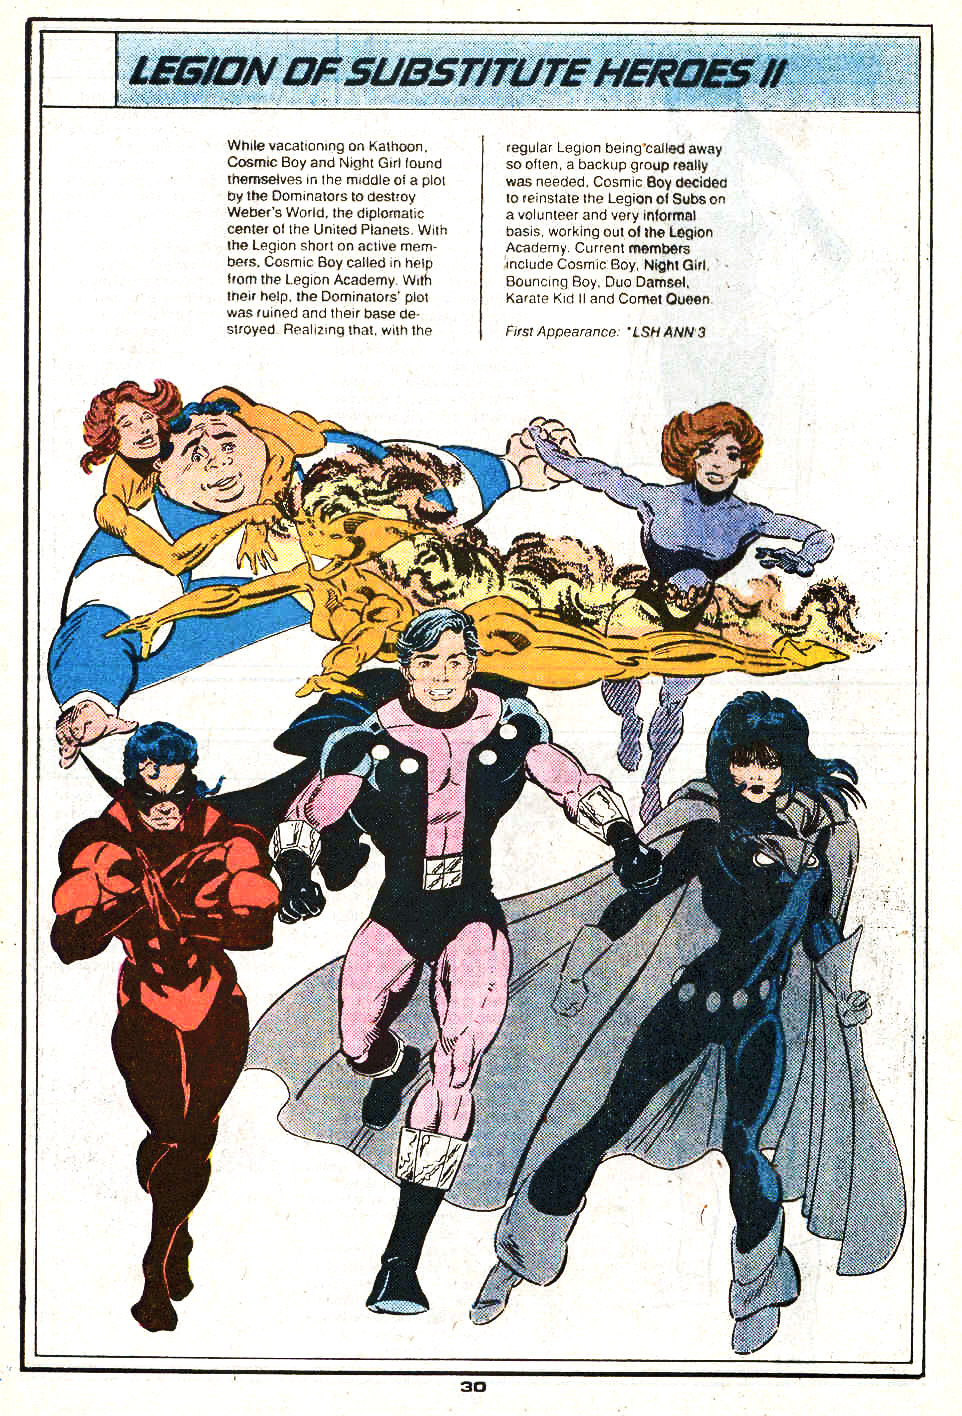 Legion of Substitute Heroes II by Greg LaRocque and Robert Campanella - Who's Who in the Legion of Super-Heroes #3